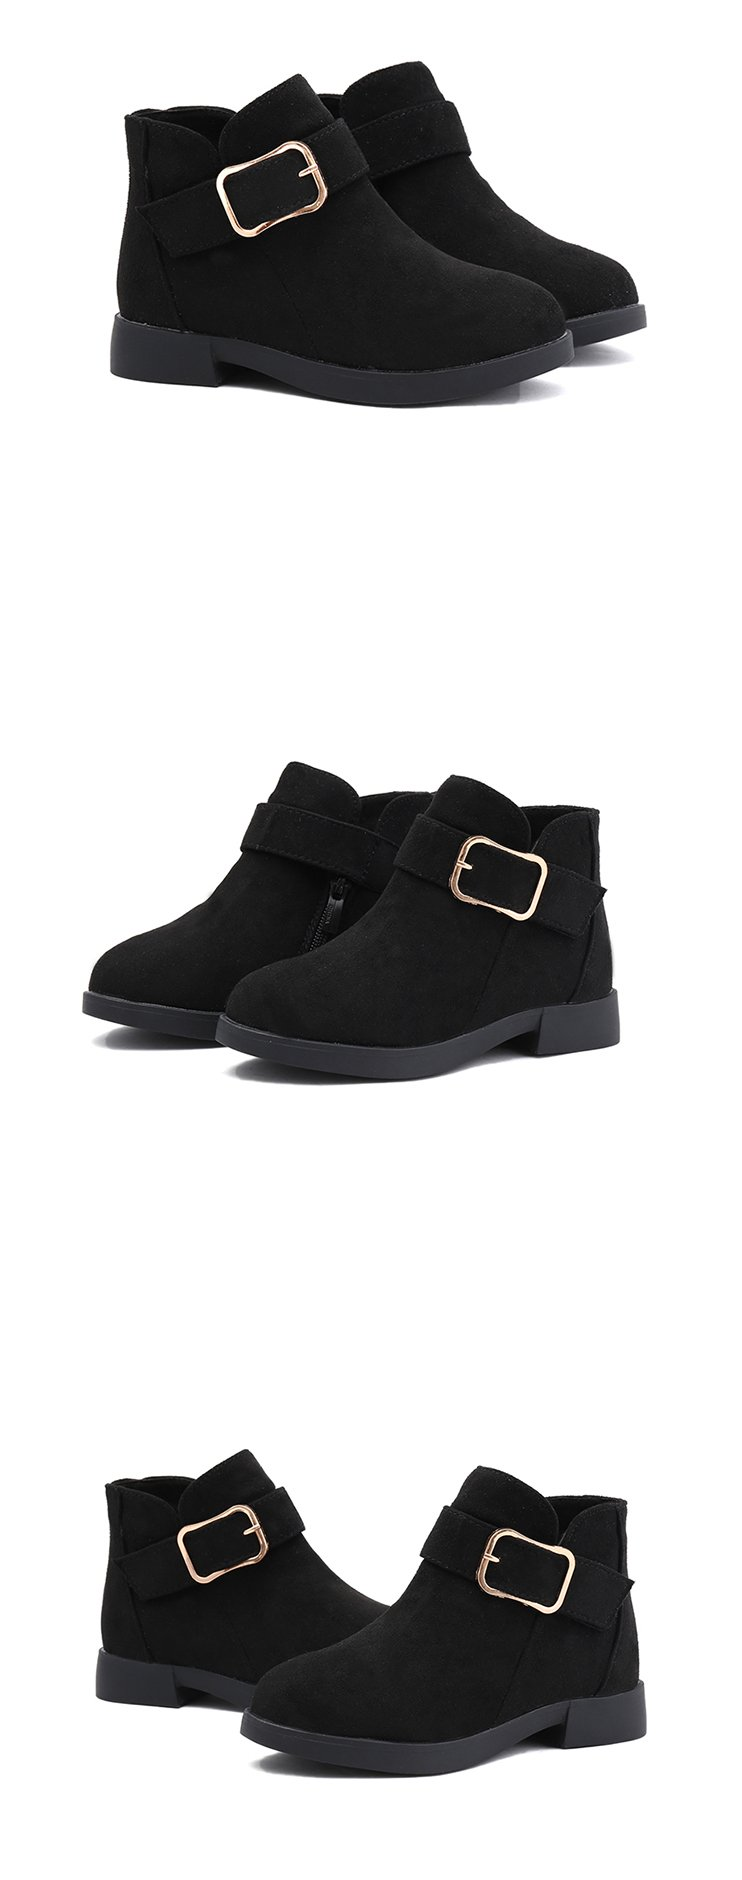 JGSHOWKITO Girls Winter Boots Classic Buckle Kids Ankle Boots Children Martin Boots Flock With Rubber Sole Short Soft Fashion